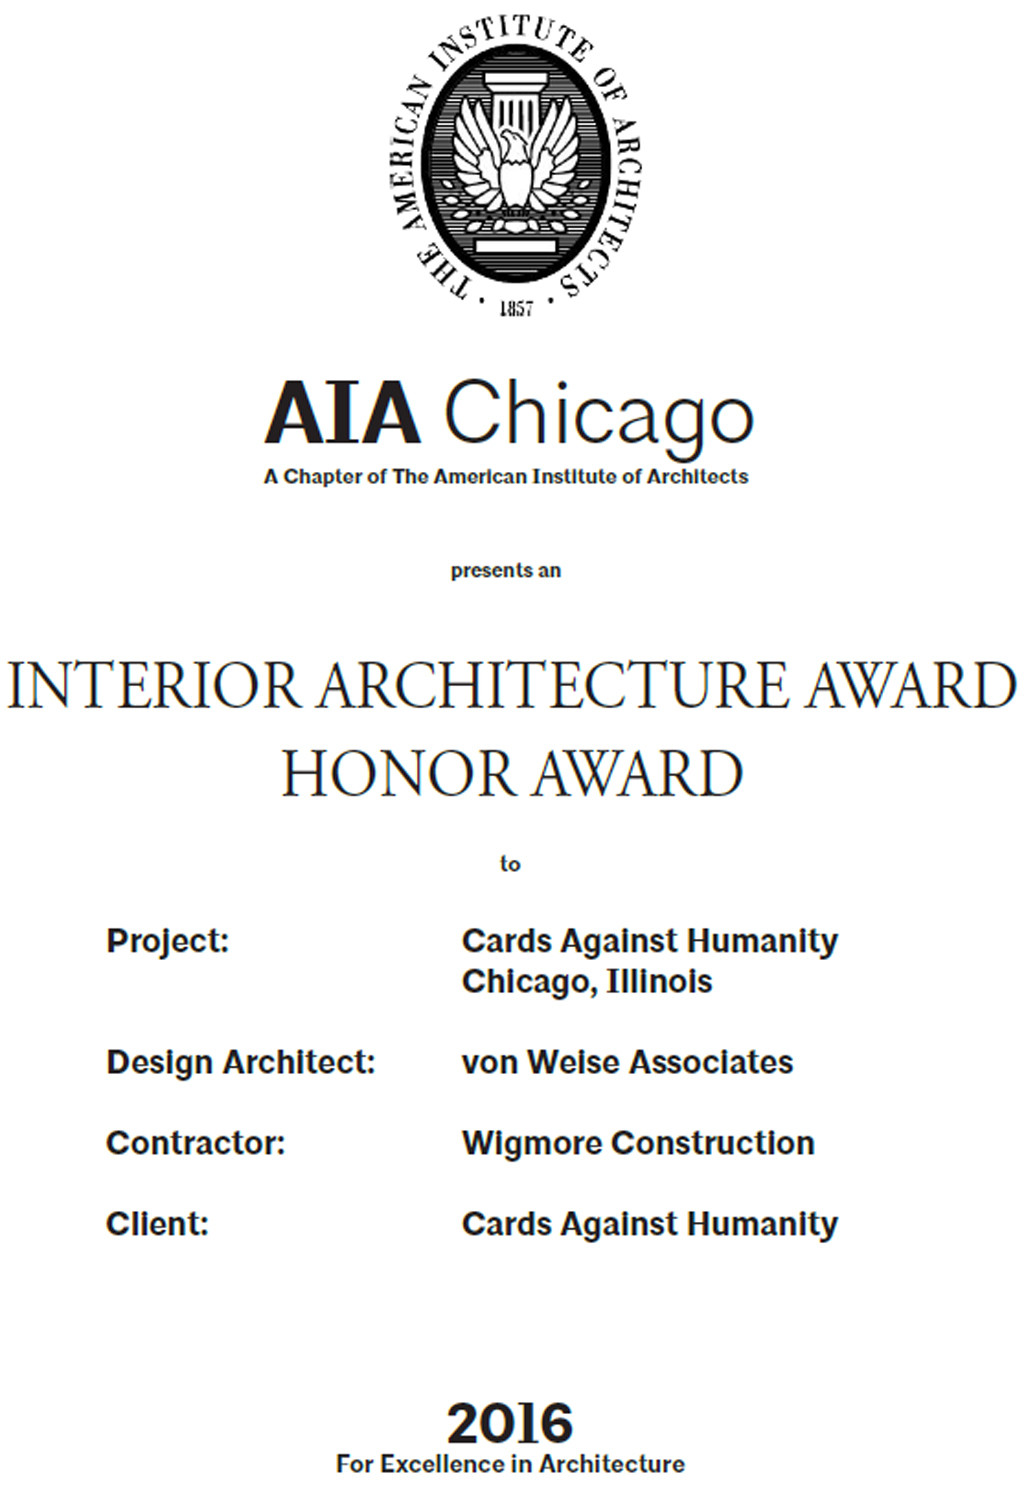 Aia 2016 Interior Architecture Award